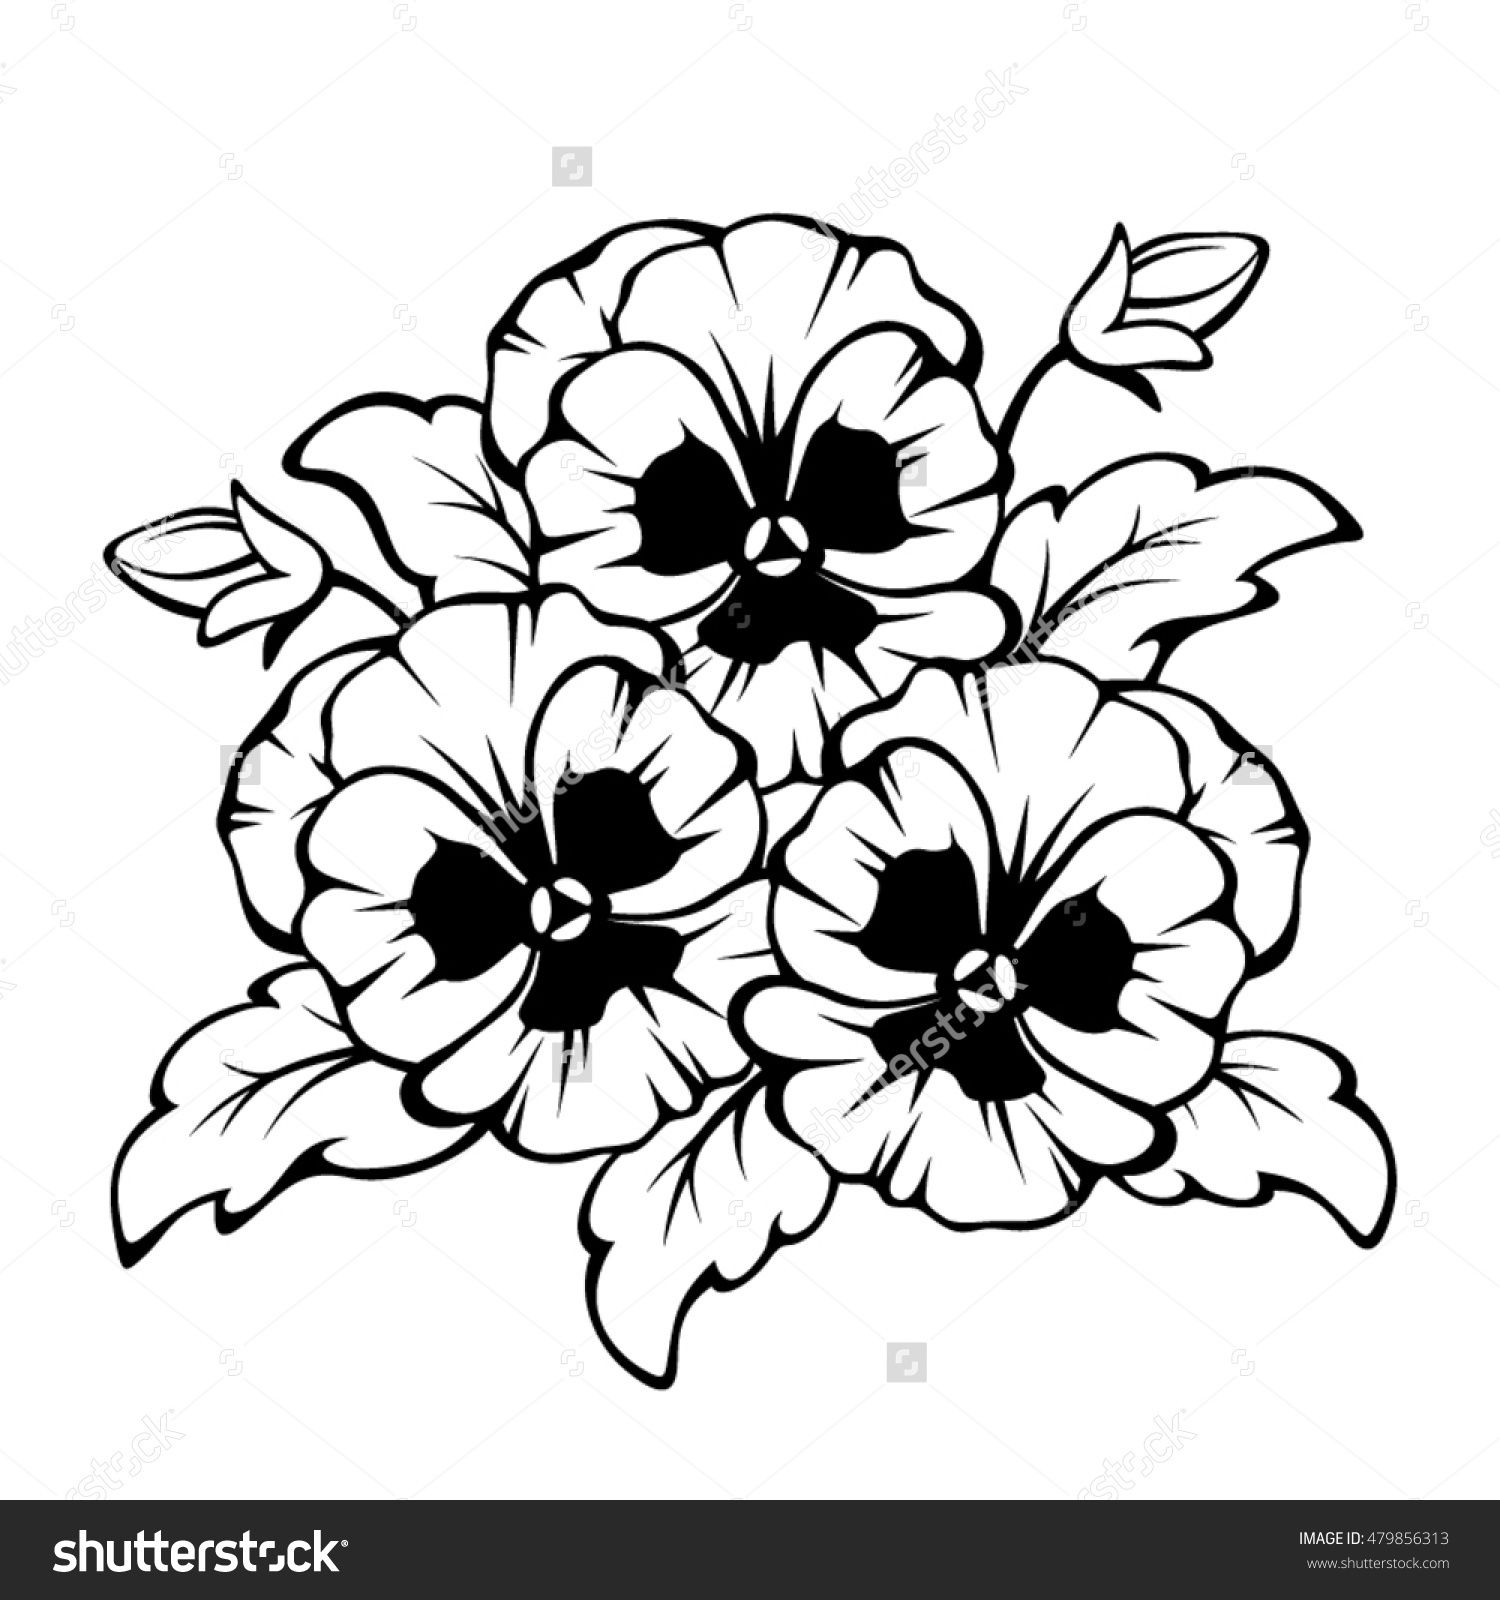 Vector Black Contour Of Pansy Flowers Isolated On A White